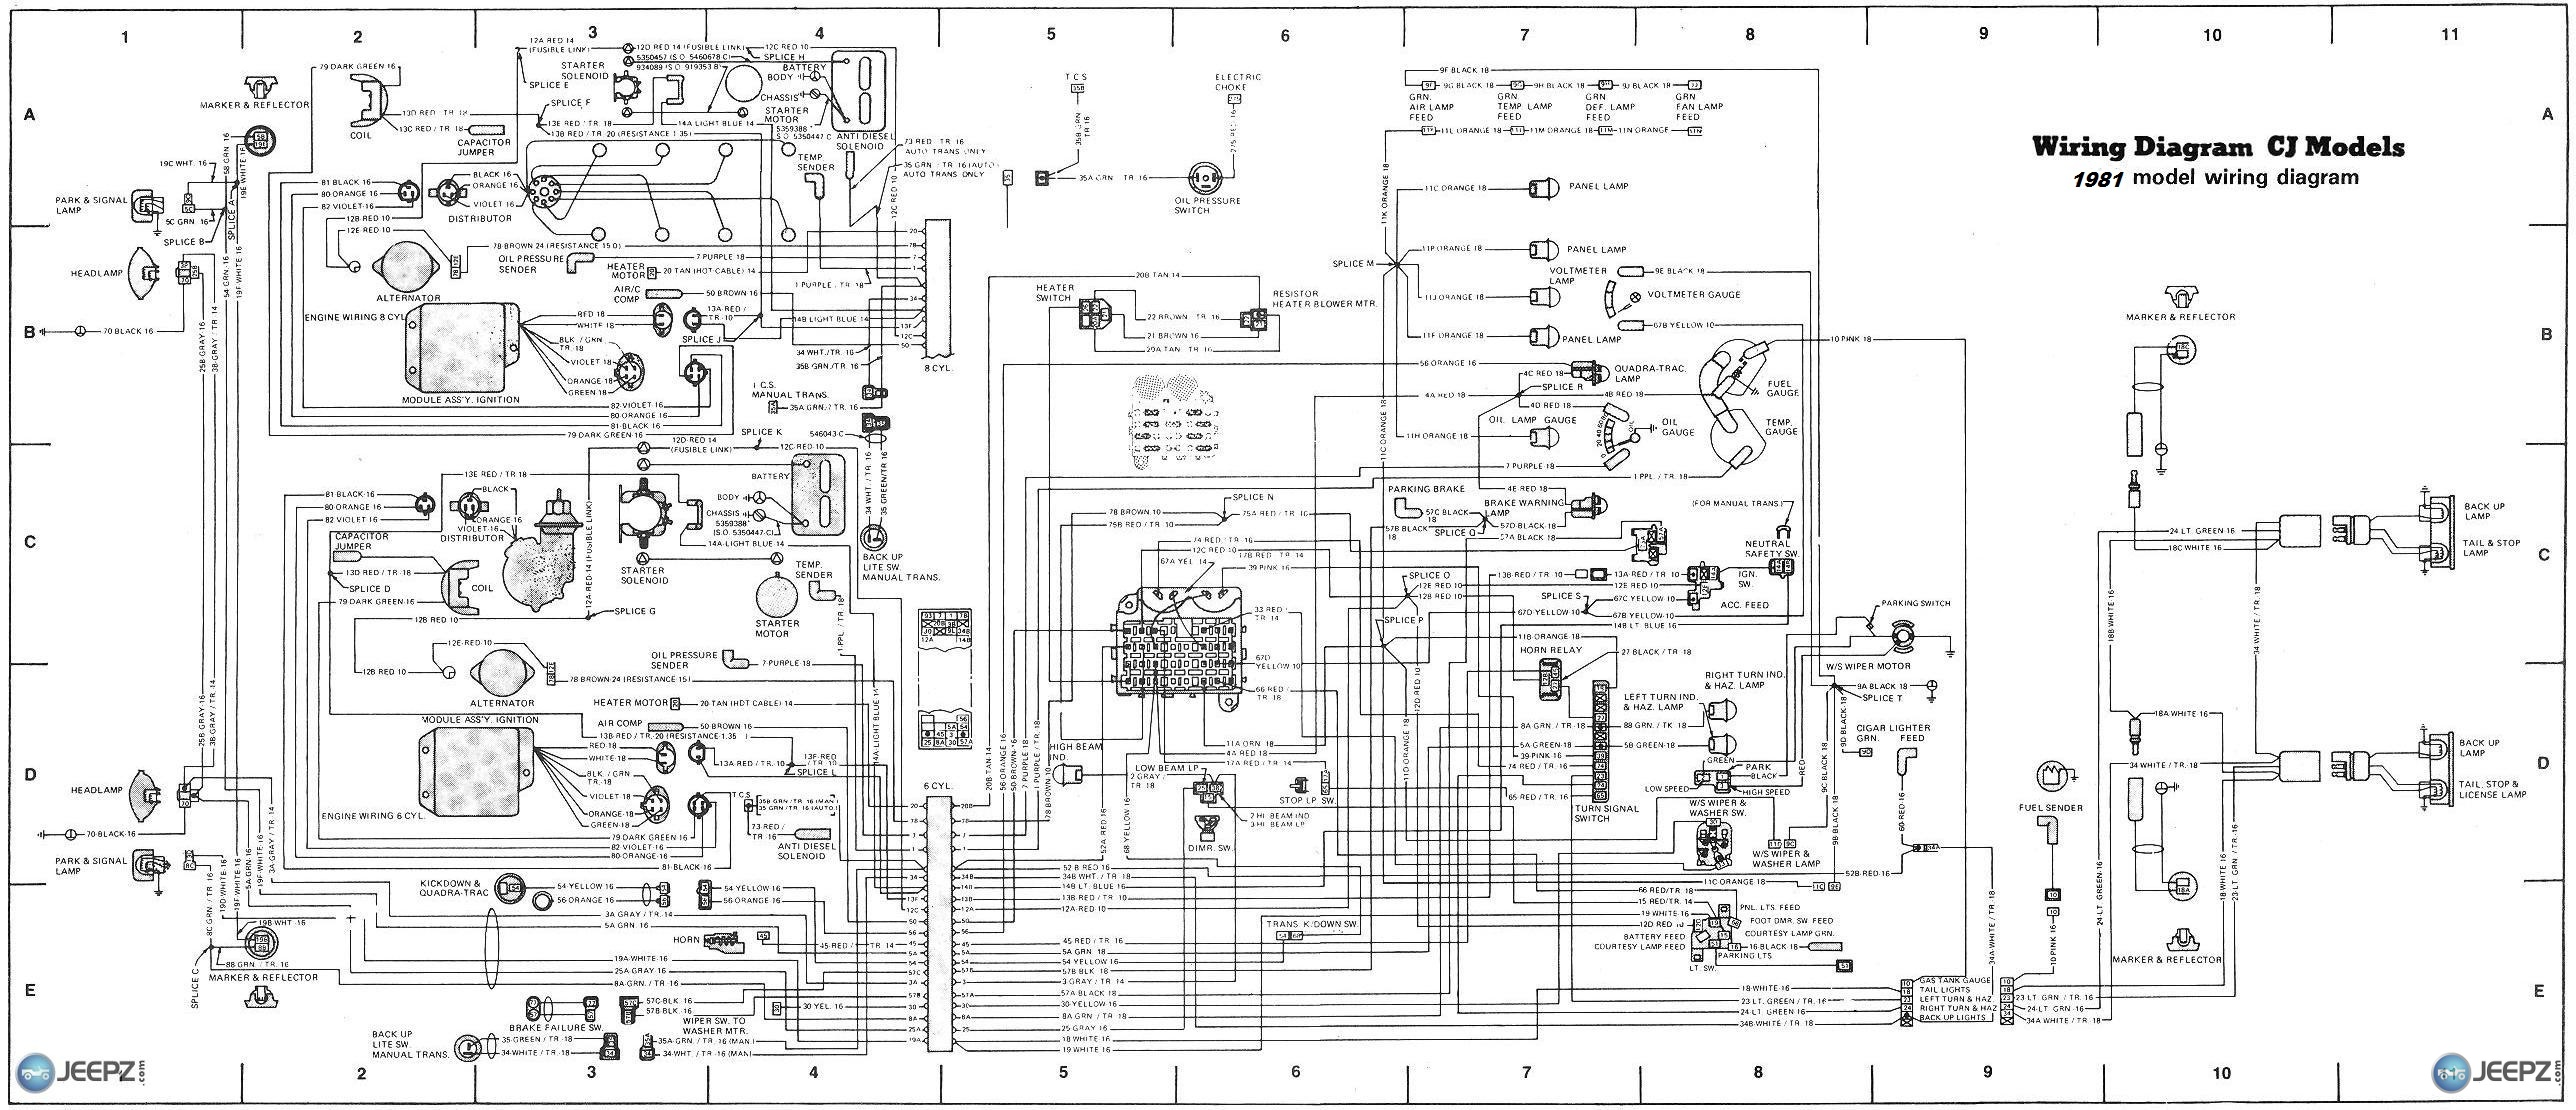 wiring diagram for 87 jeep wrangler simple wiring diagram 1995 jeep  wrangler wiring diagram 1980 jeep